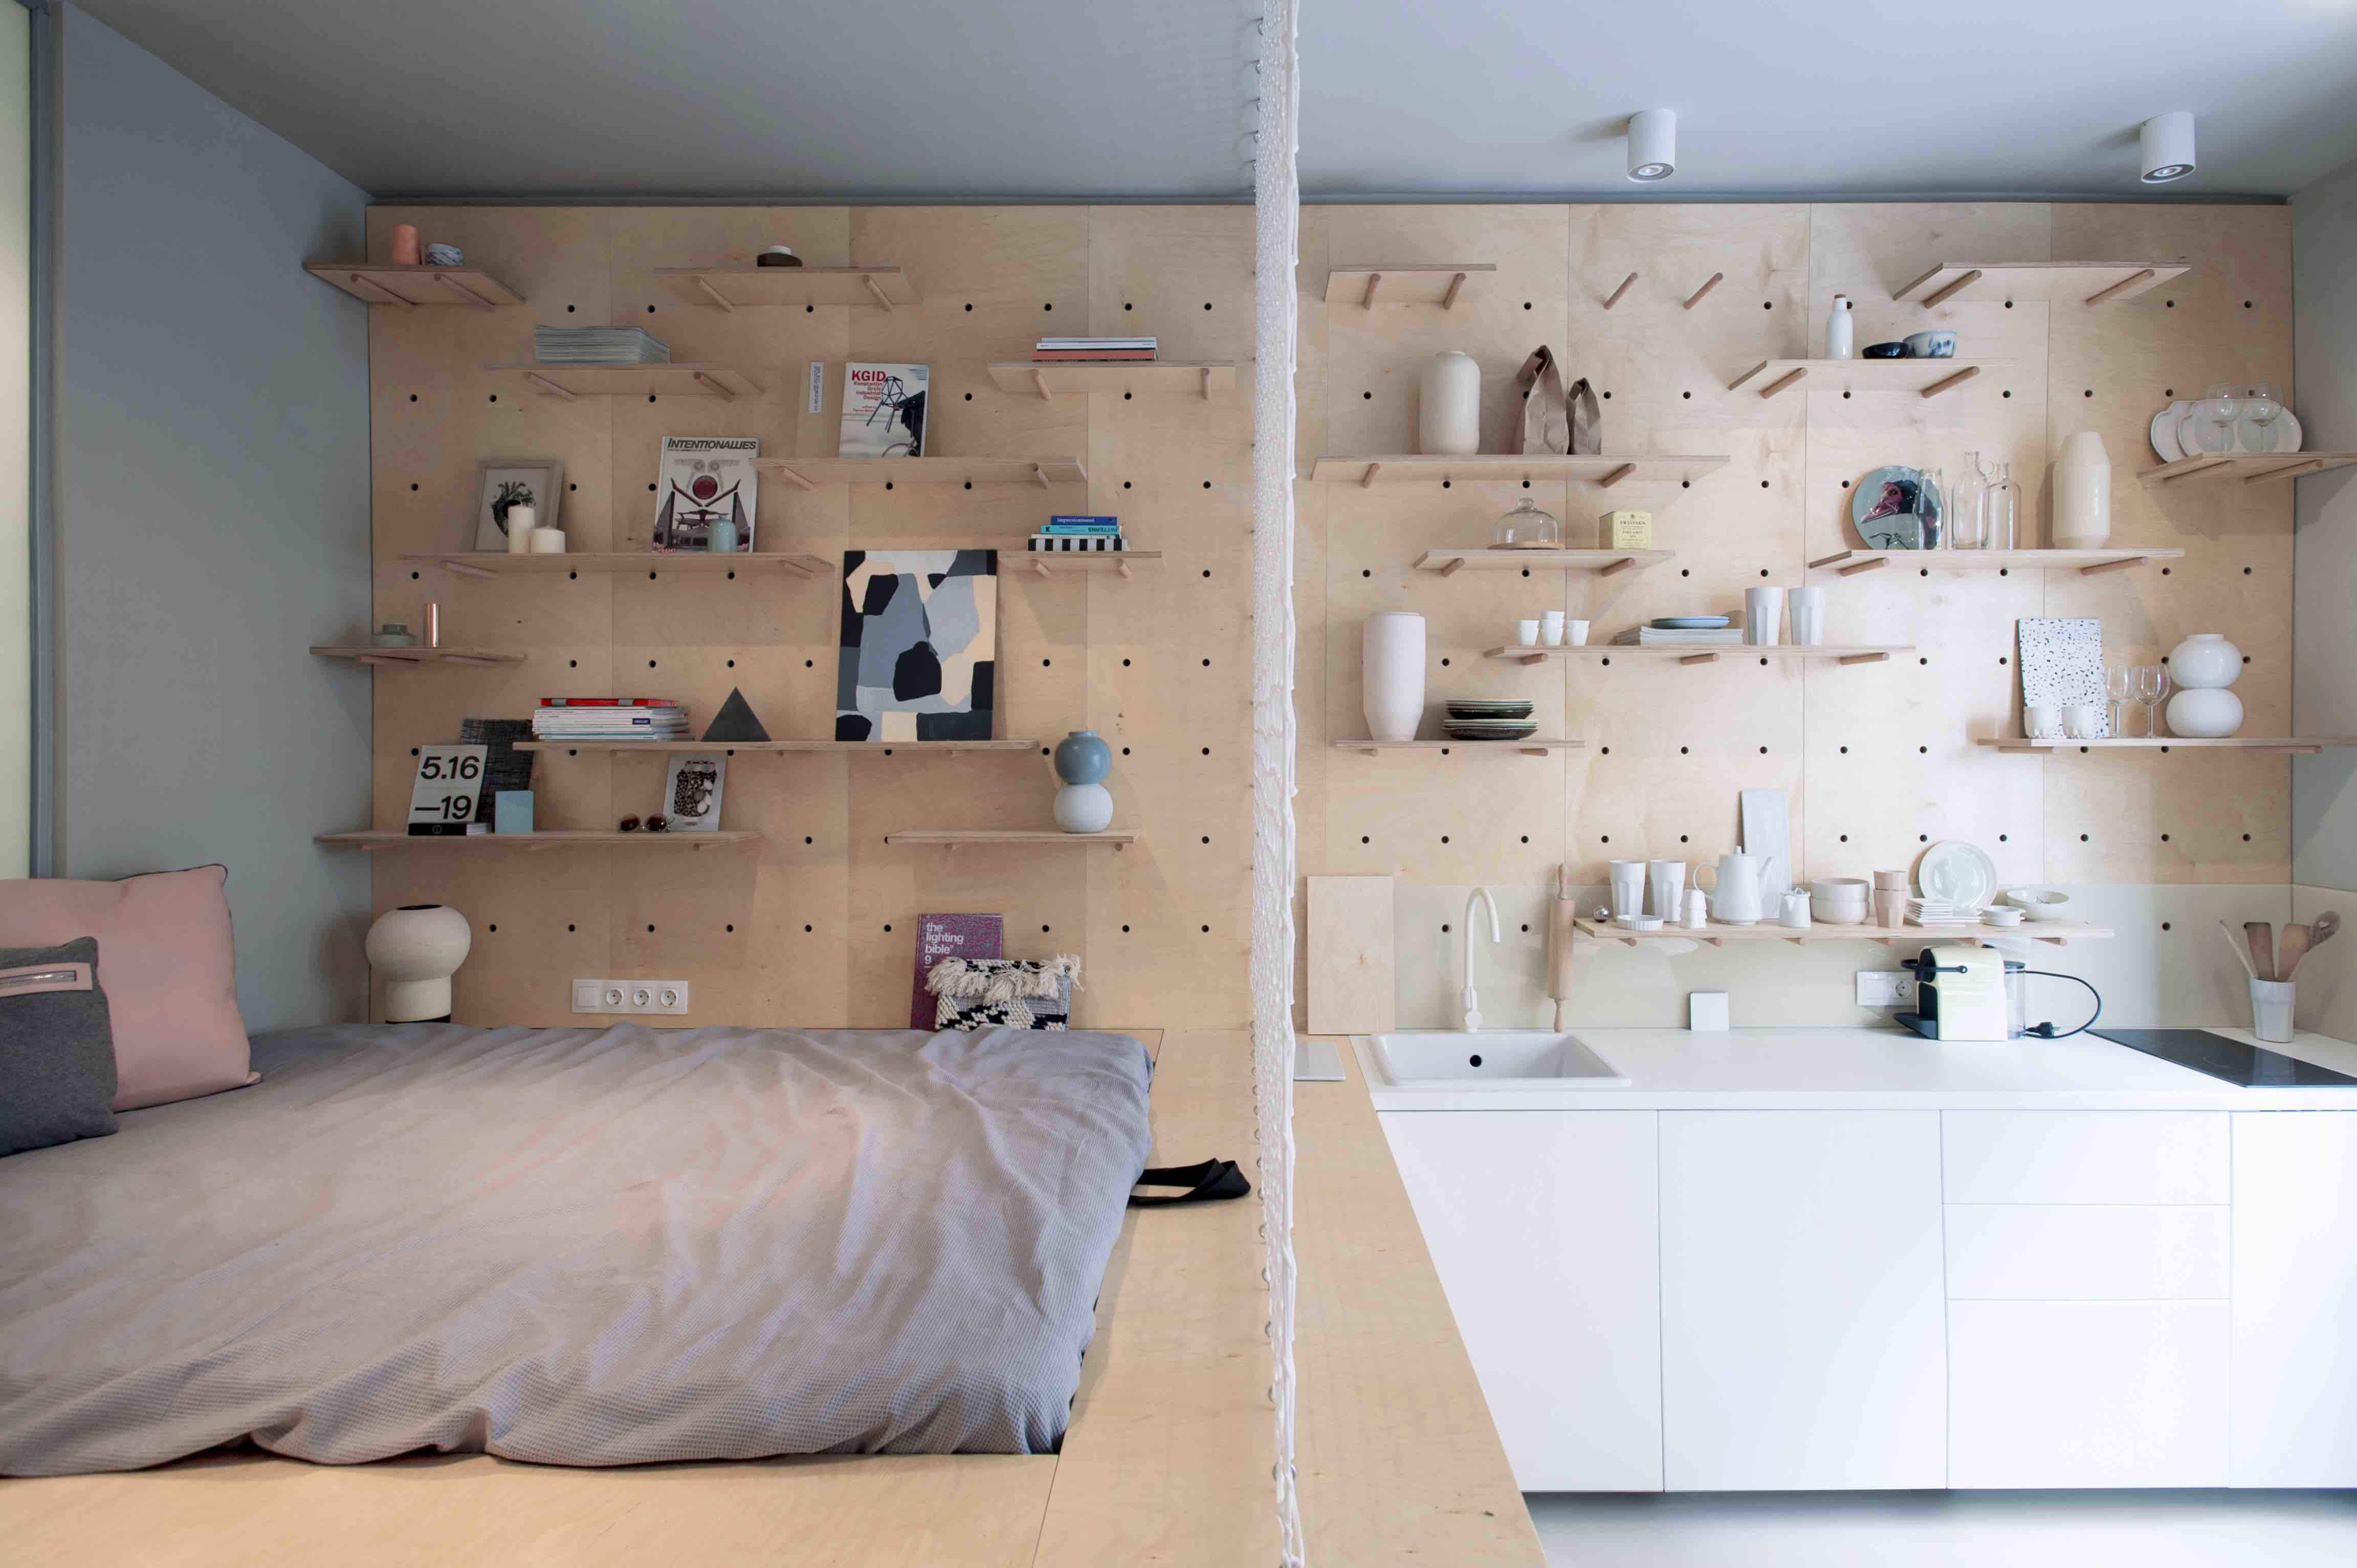 3 Smart Storage Systems Maximize Space in